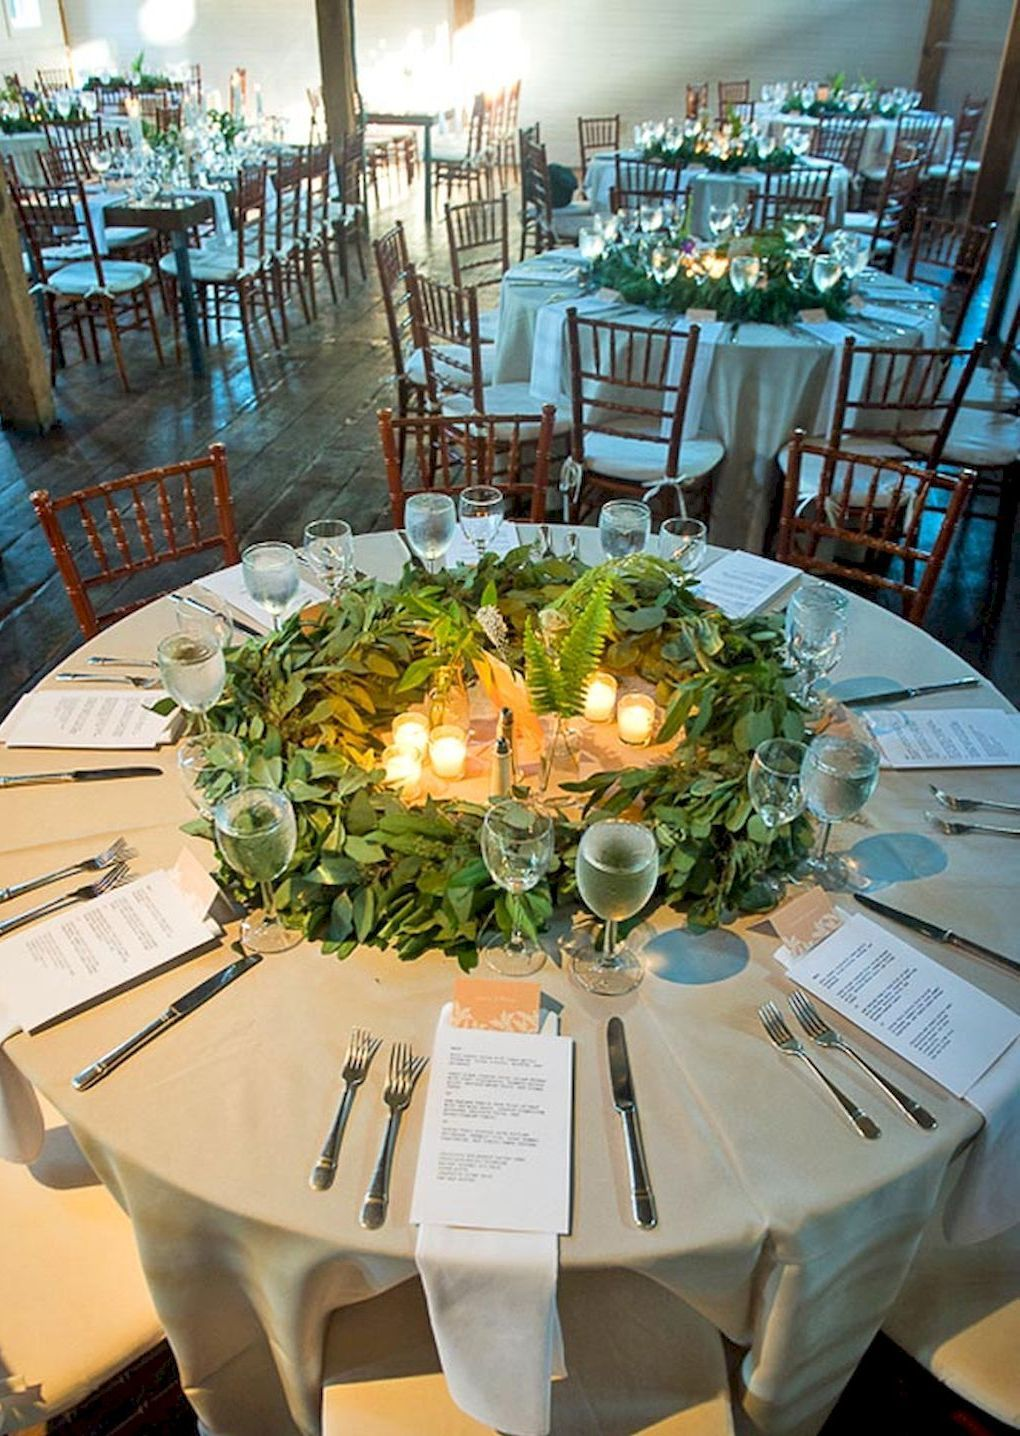 54 Simple Greenery Wedding Centerpieces Decor Ideas Bitecloth Com Greenery Wedding Decor Eucalyptus Wedding Decor Round Wedding Tables